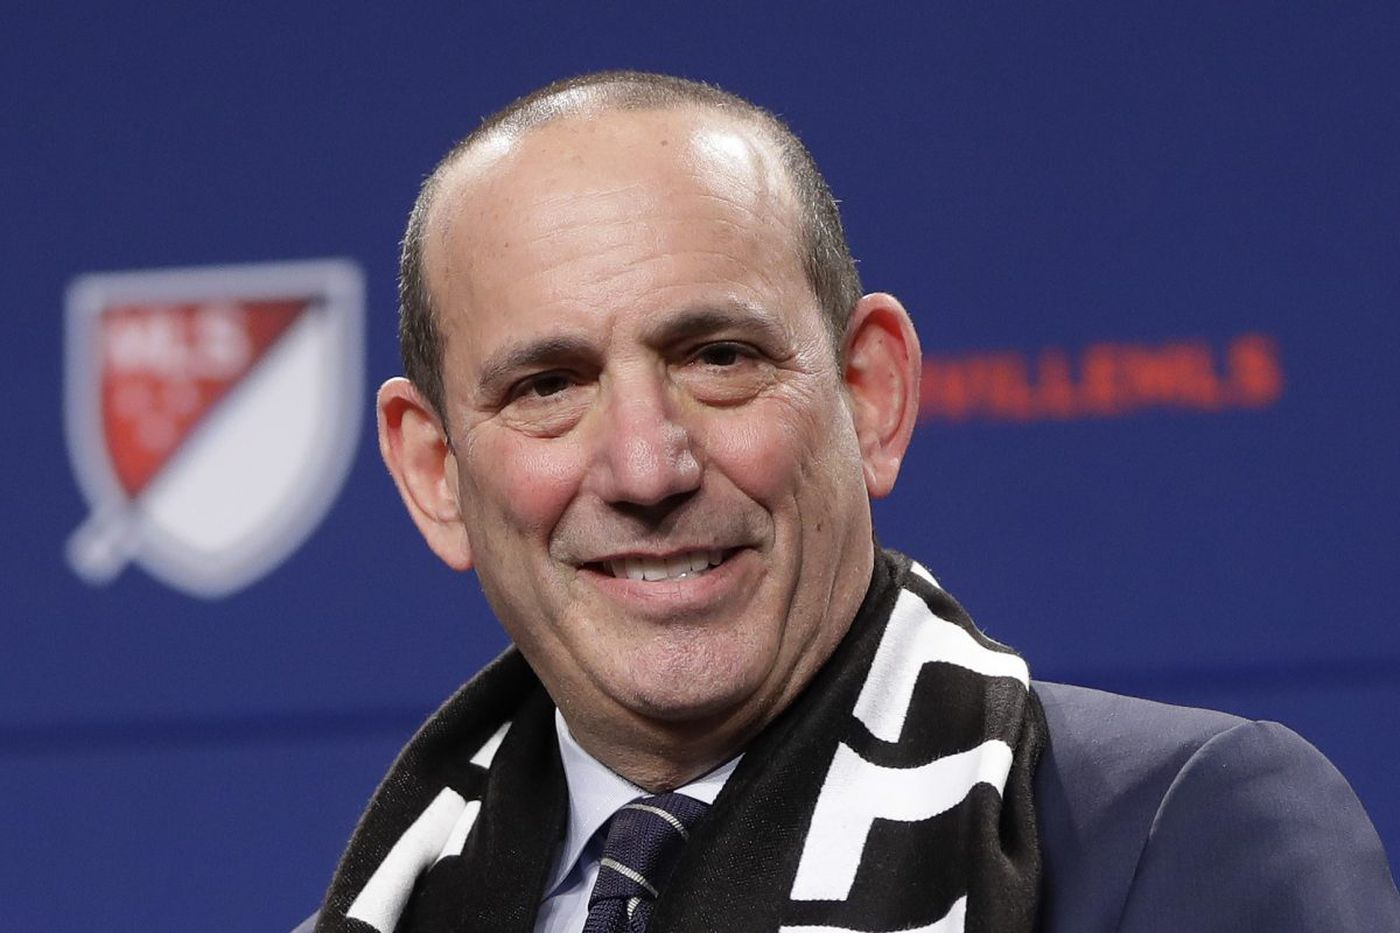 Don Garber sees 'real ambition' in Union academy, but wants to see it 'pay off'